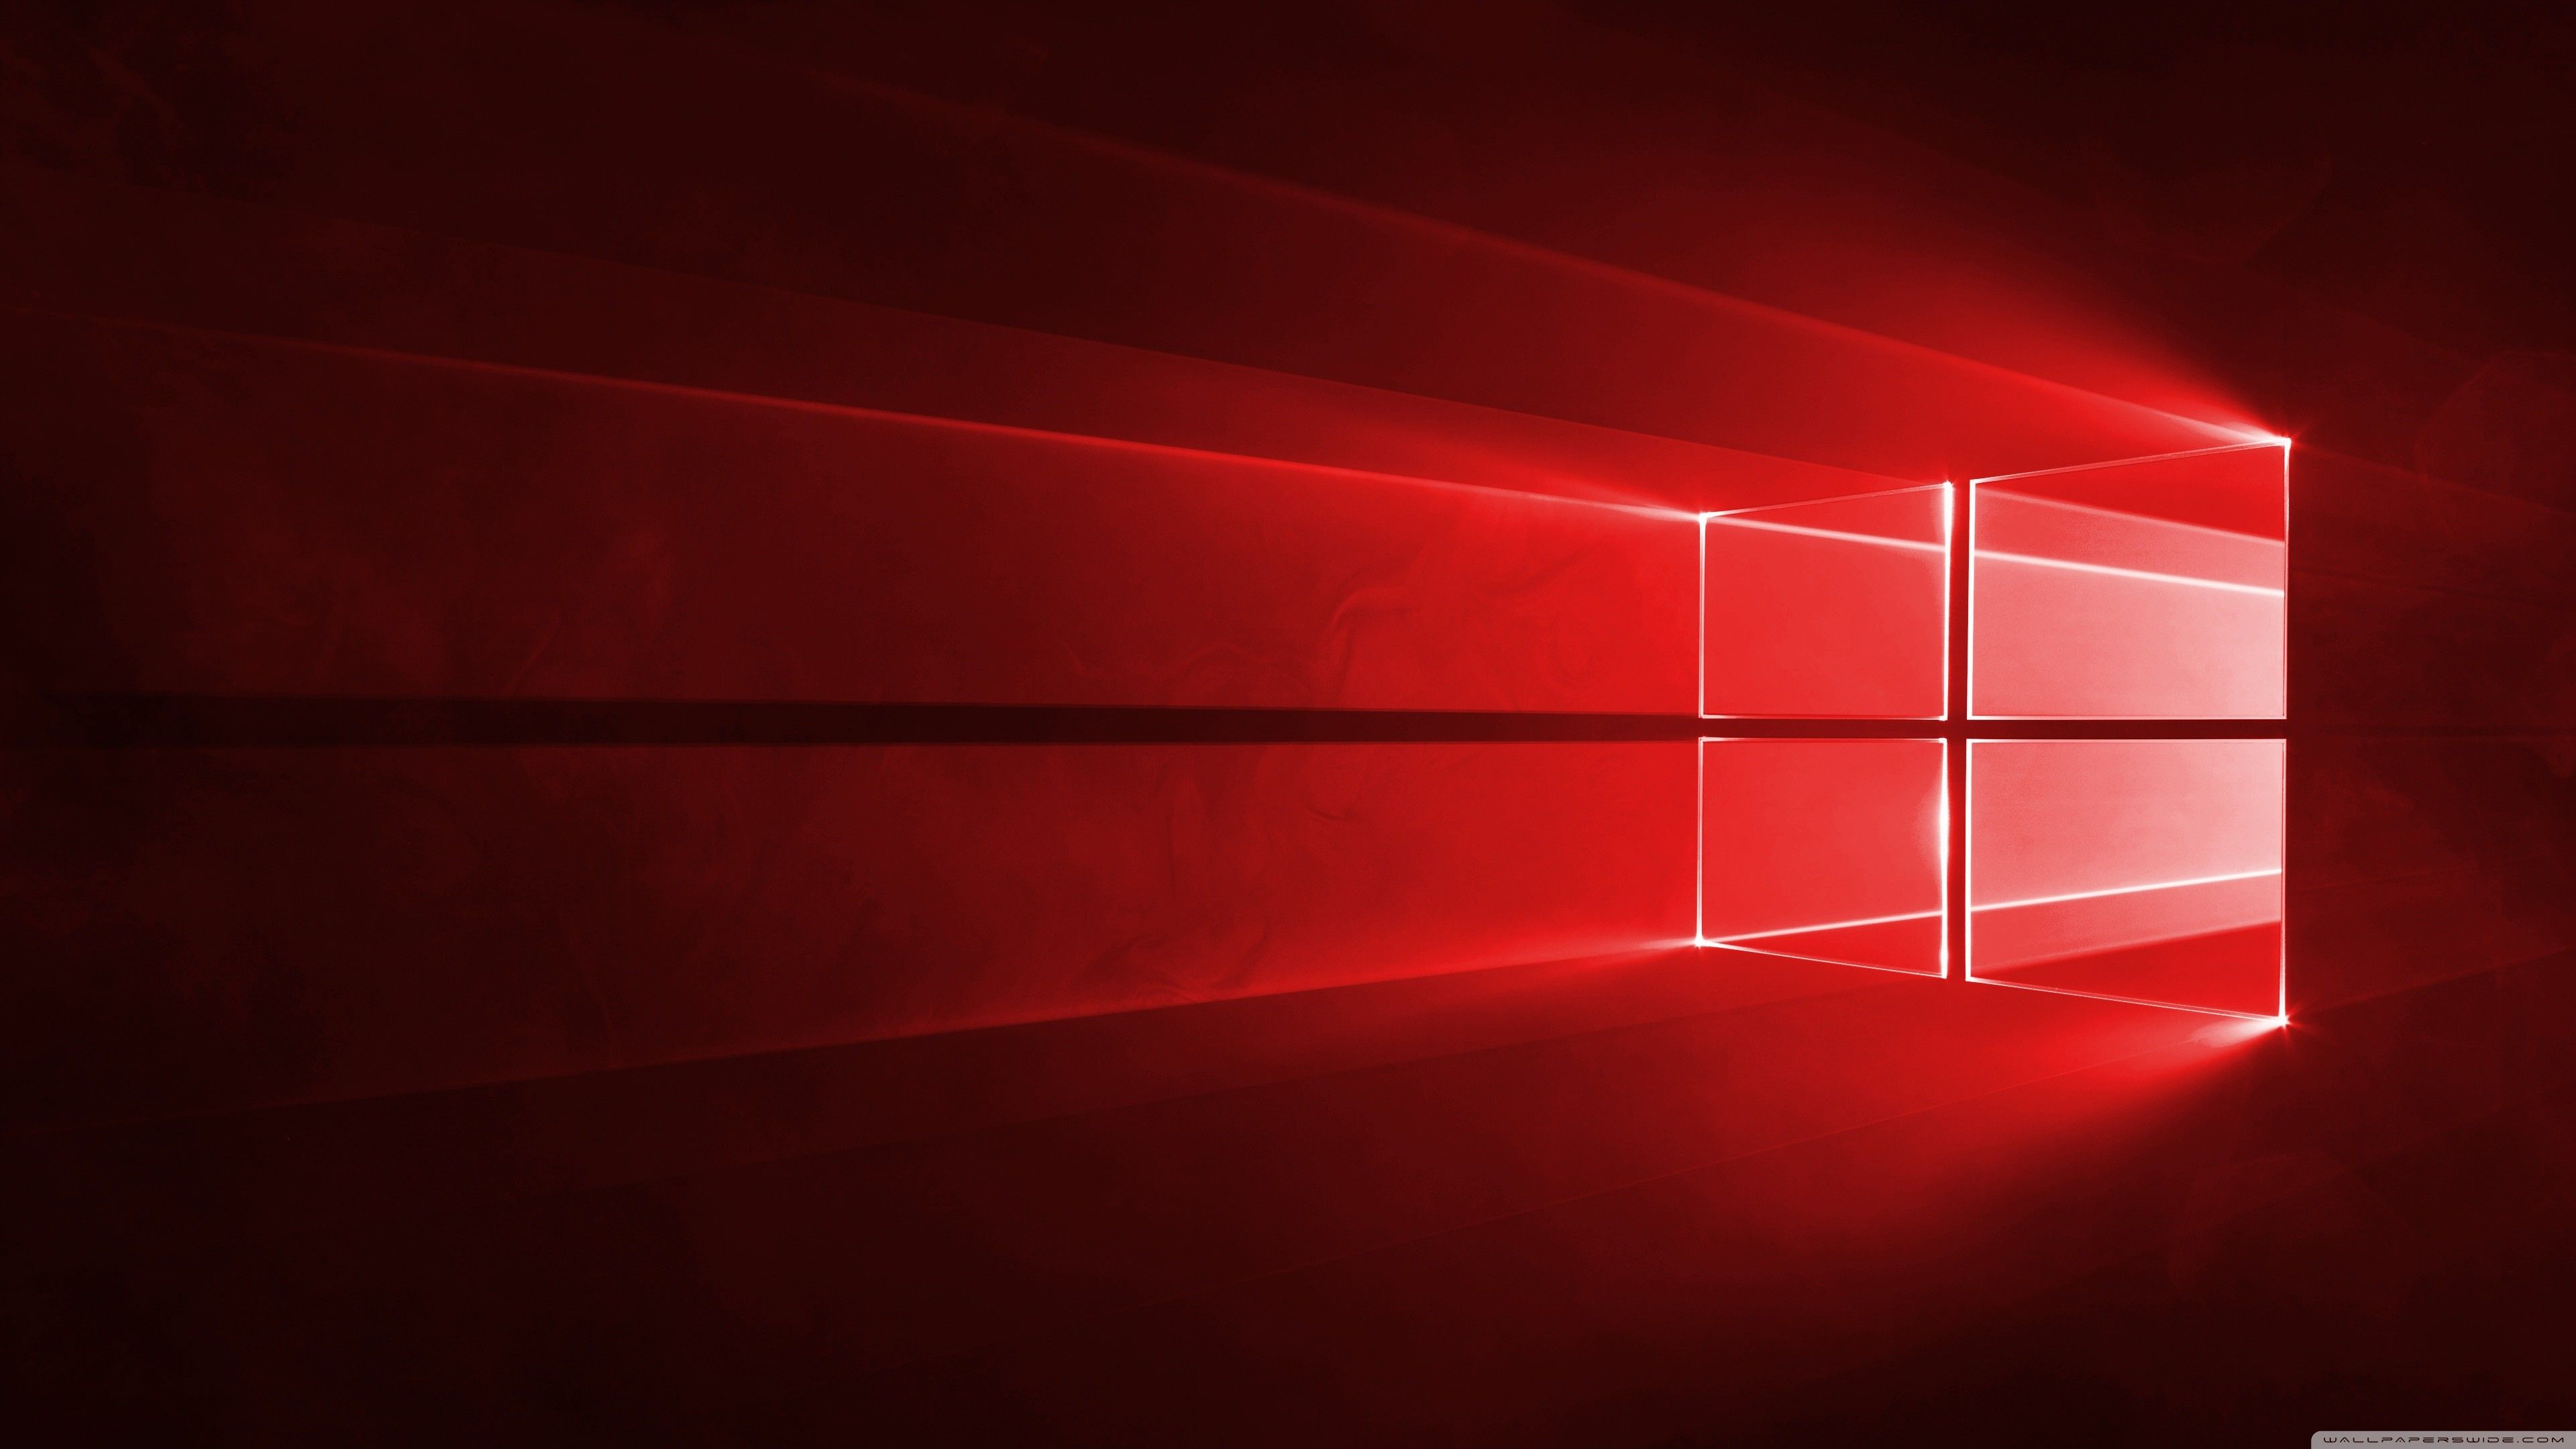 3840x2160 Windows 10 Red In 4k Hd Wide Wallpaper For